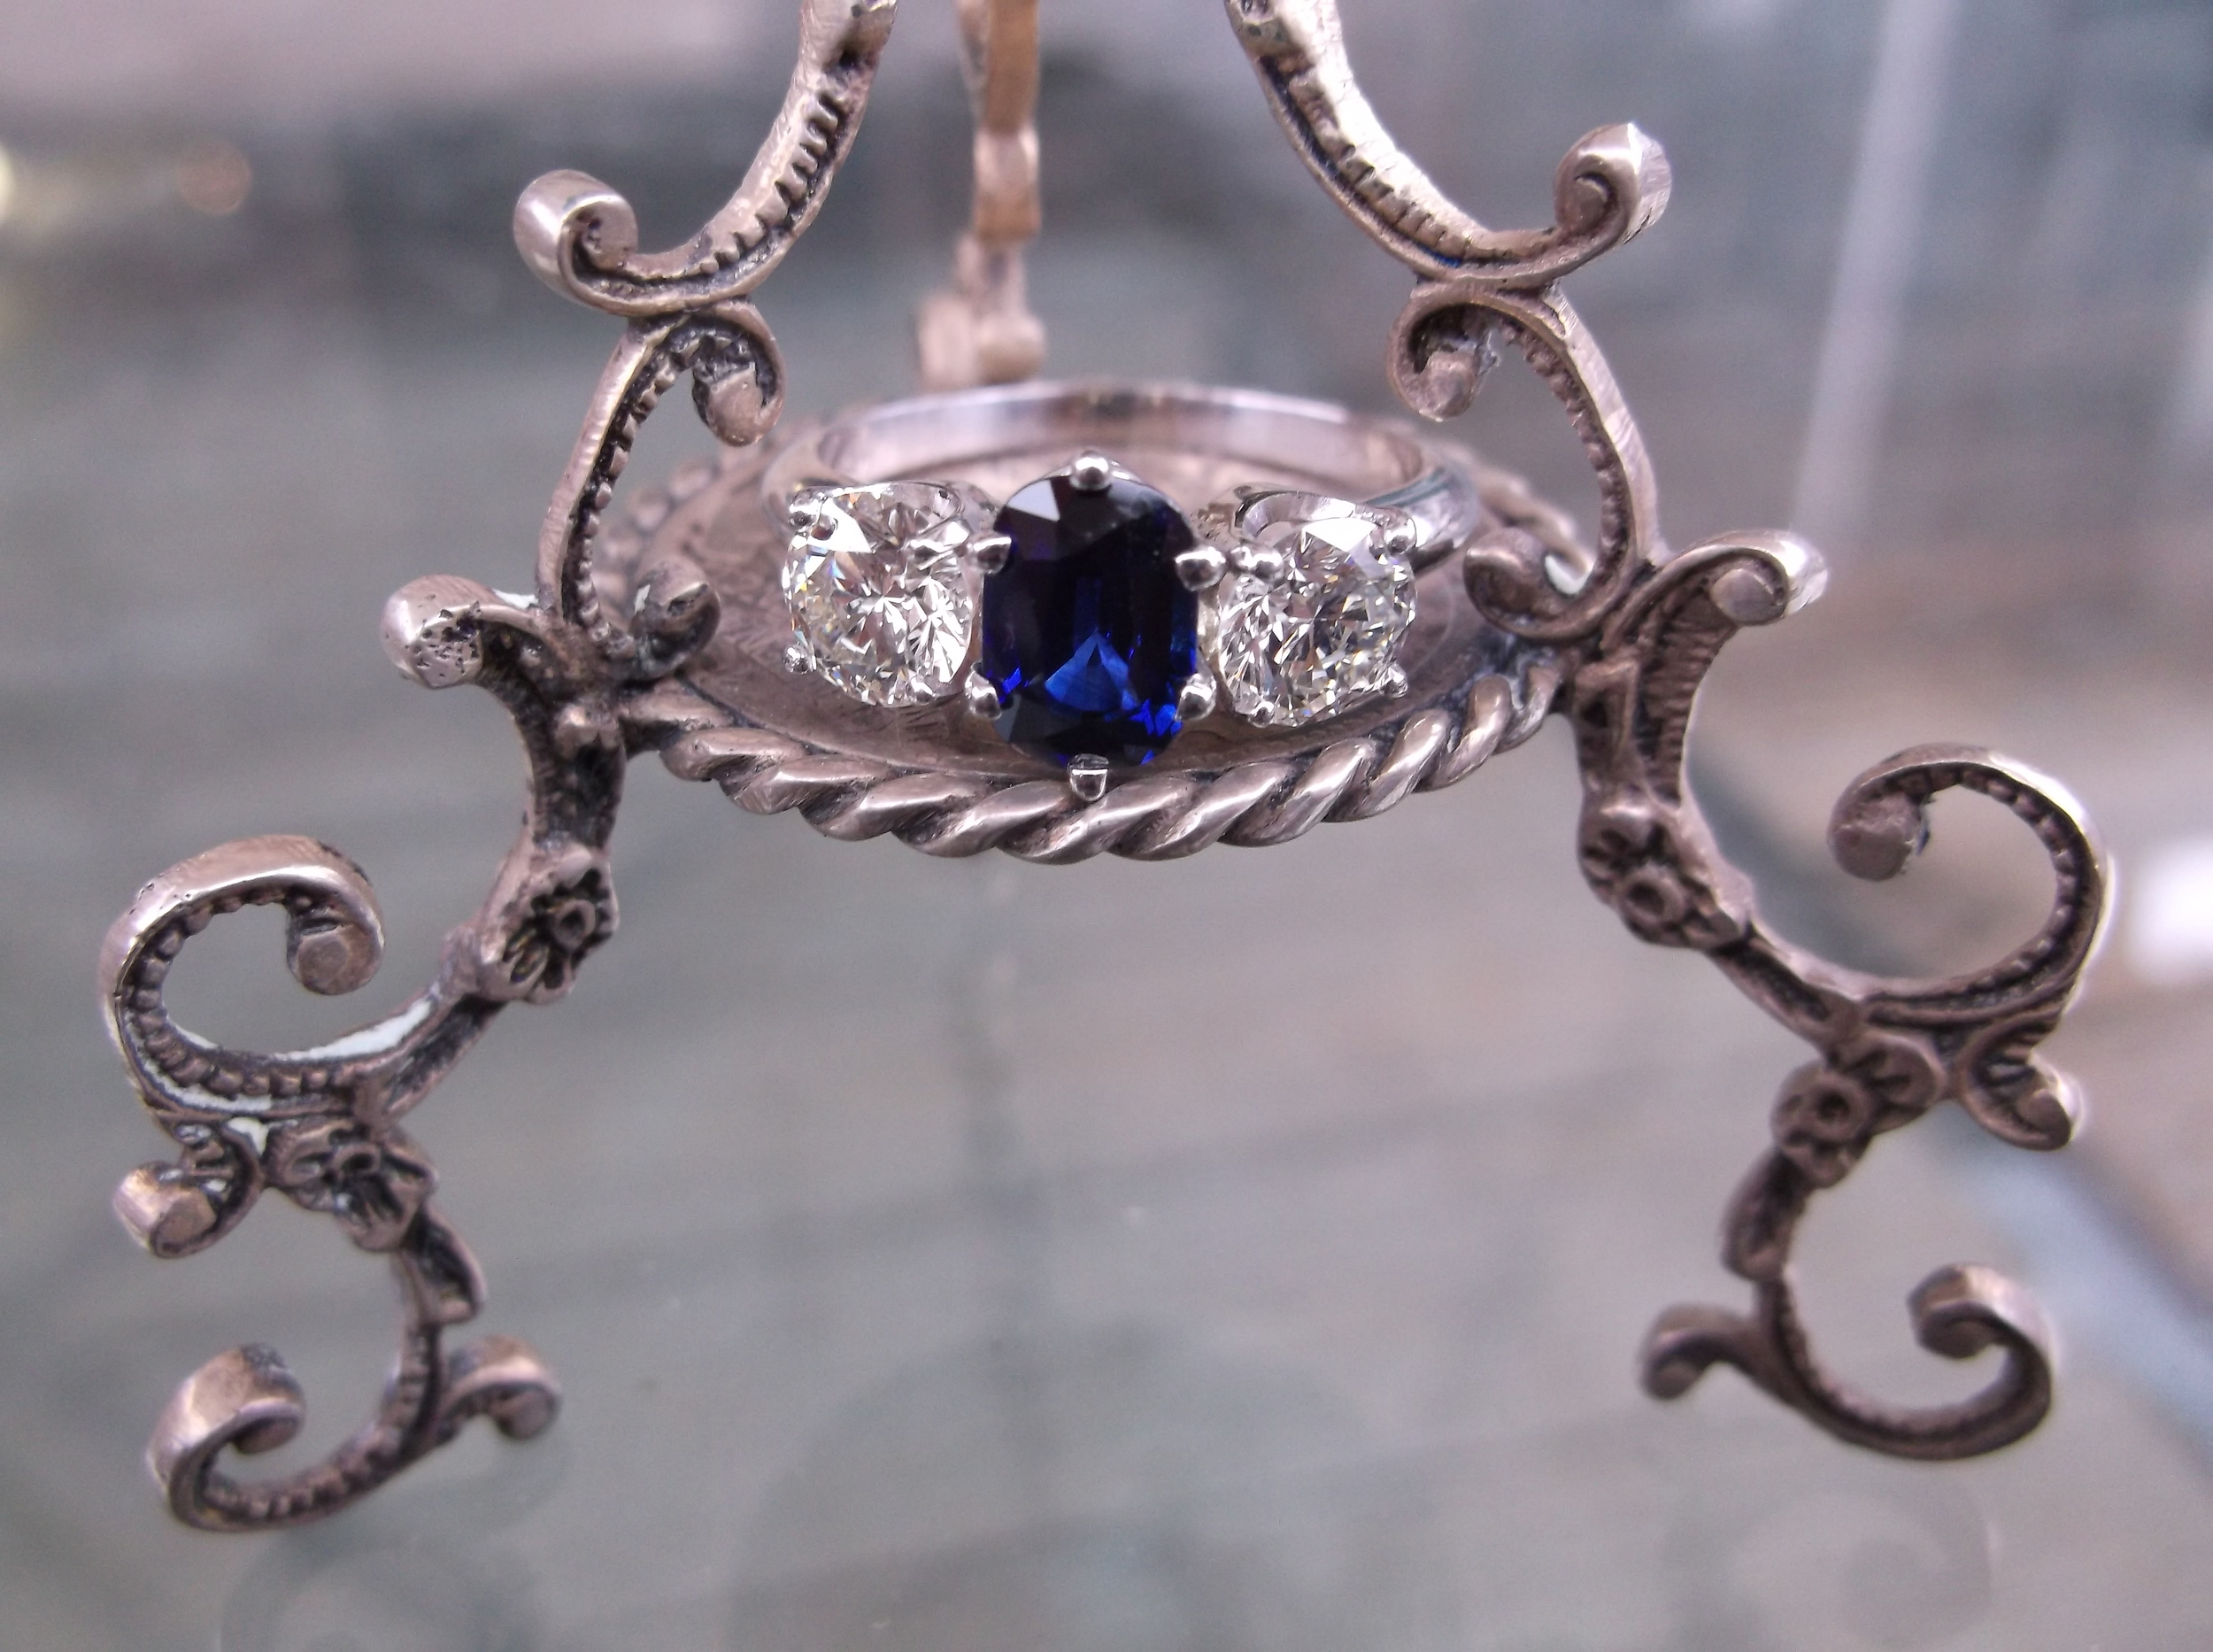 SOLD - Vivacious sapphire and diamond ring set in white gold with a 1.22 carat sapphire and 1.20 carats total weight in diamonds.